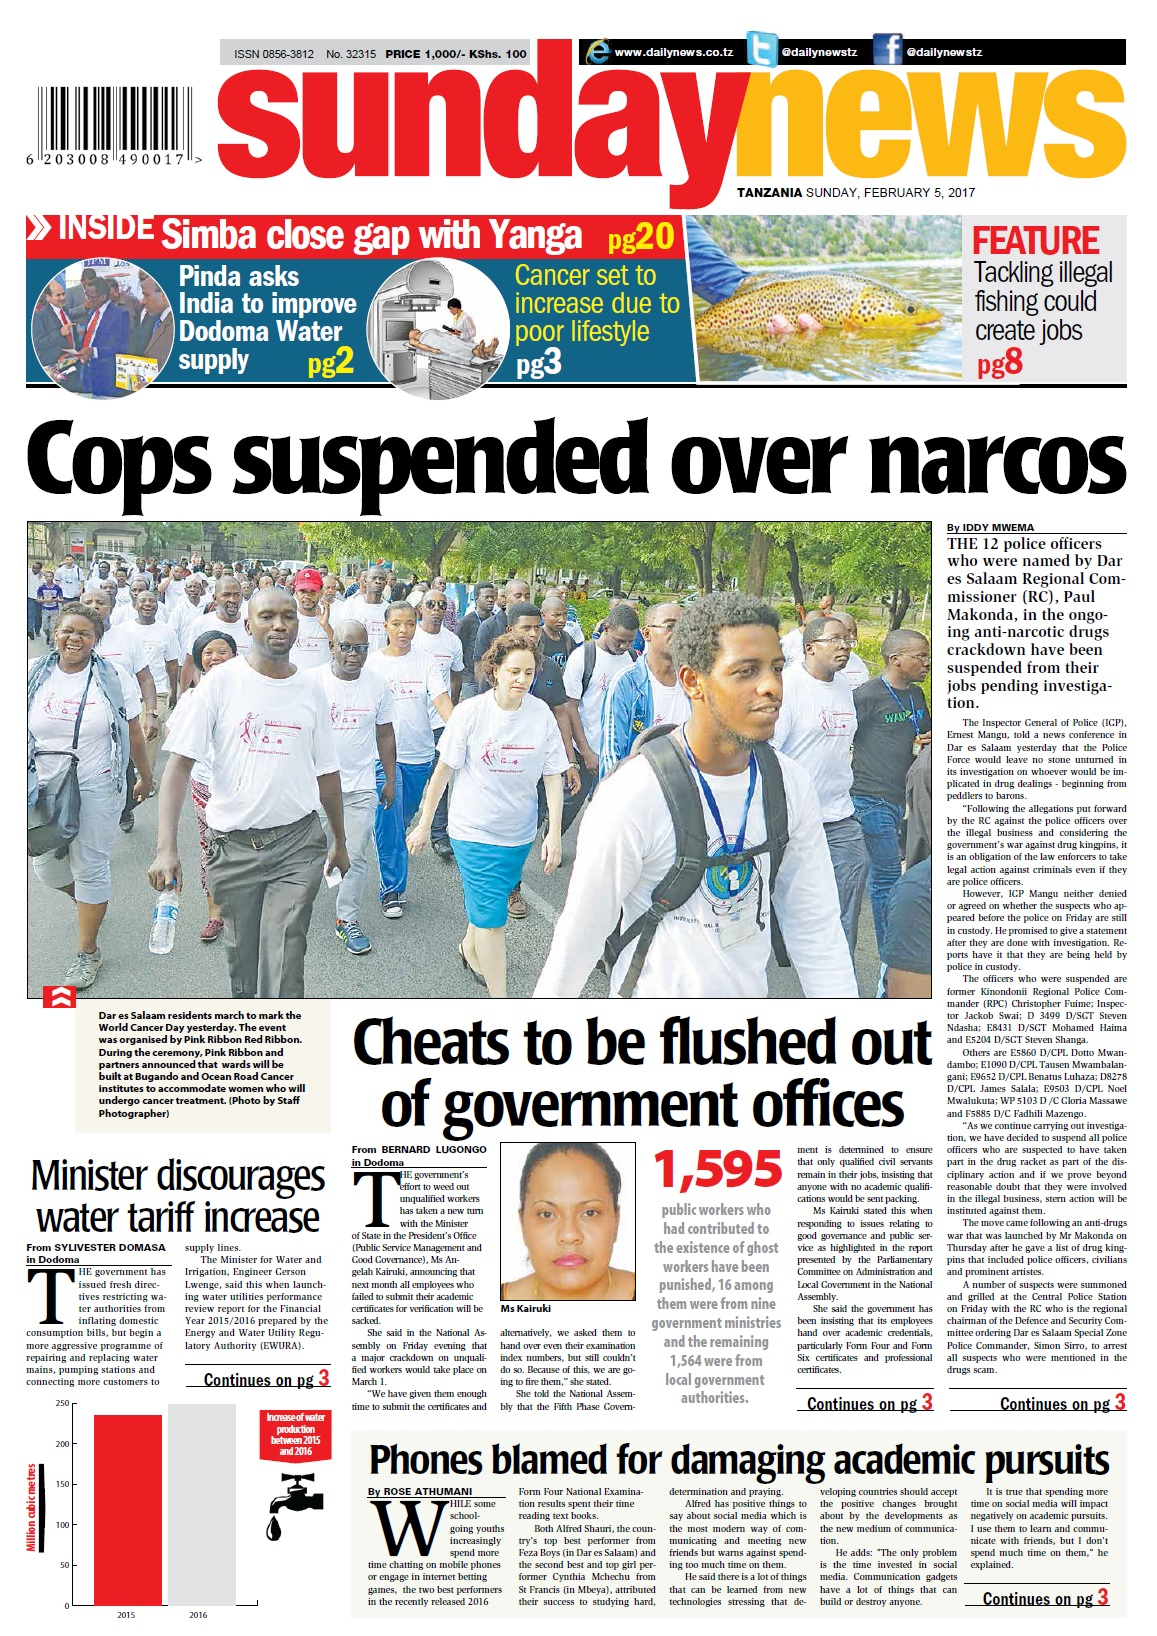 COPS SUSPENDED OVER NARCOS